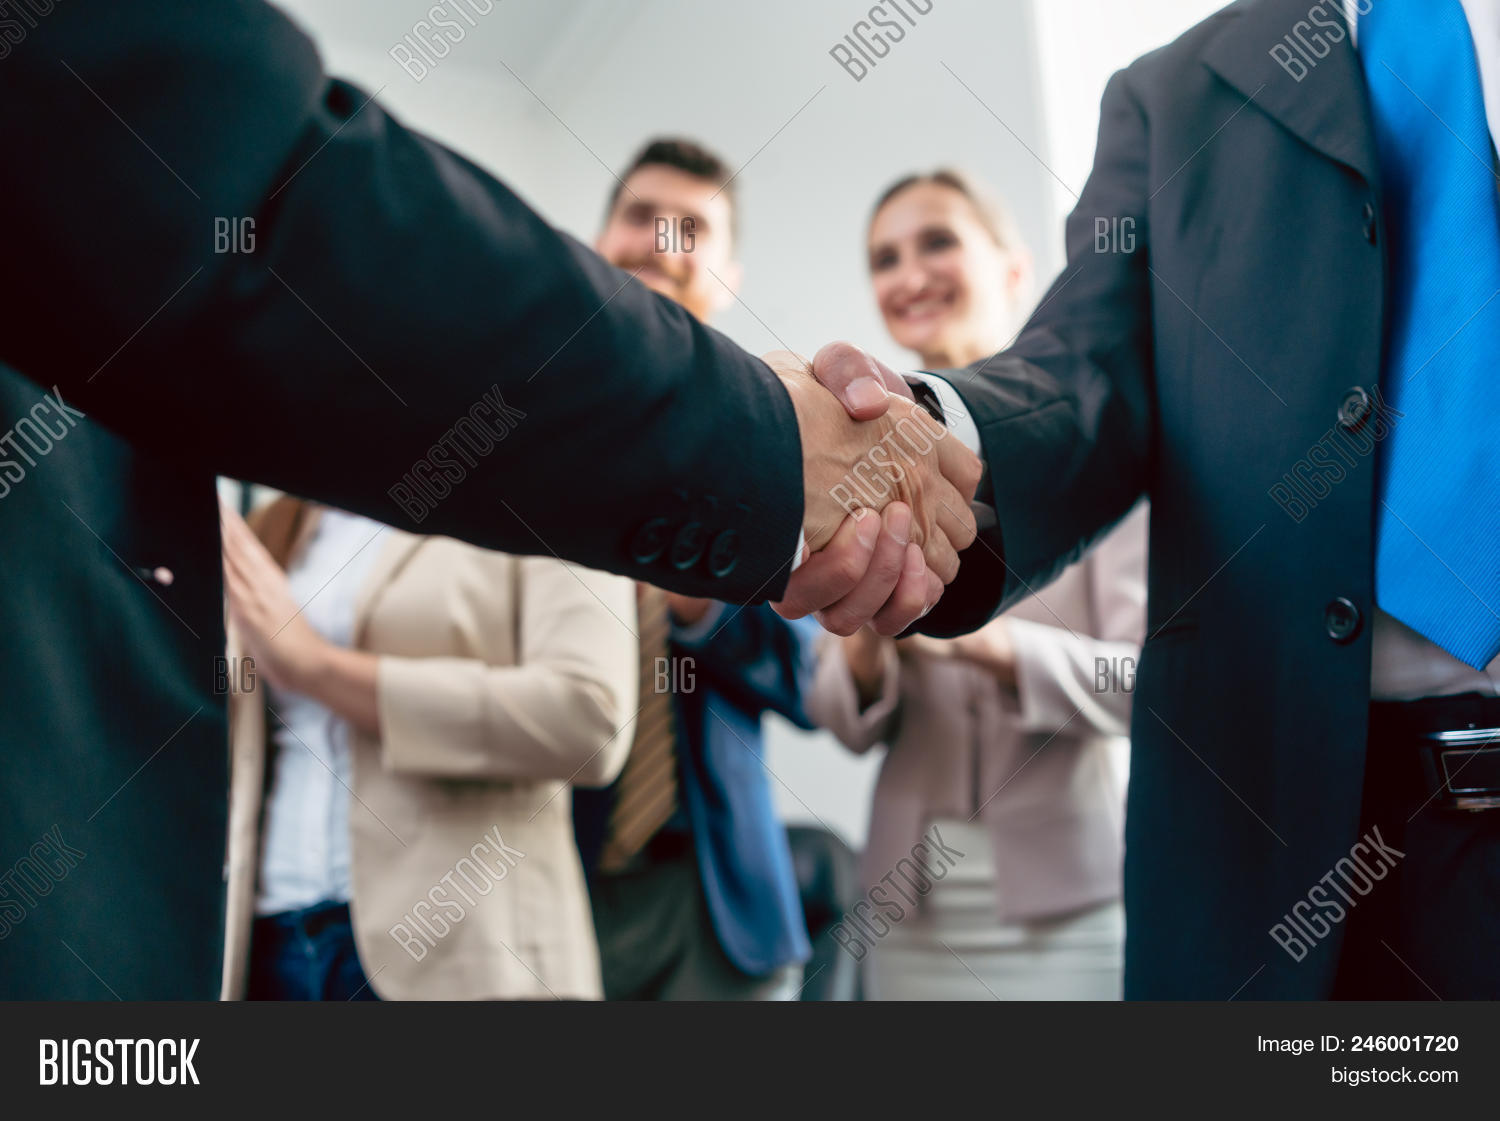 agreement,applauding,applauses,asian,associates,association,b2b,board,business,businessman,businessperson,businesswoman,career,caucasian,ceo,close-up,company,contract,corporate,corporation,directors,employees,hands,handshake,leadership,man,management,manager,meeting,men,multi-ethnic,office,partnership,people,shaking hands,sleeve,stakeholder,standing,success,successful,suit,team,teamwork,three,trust,two,woman